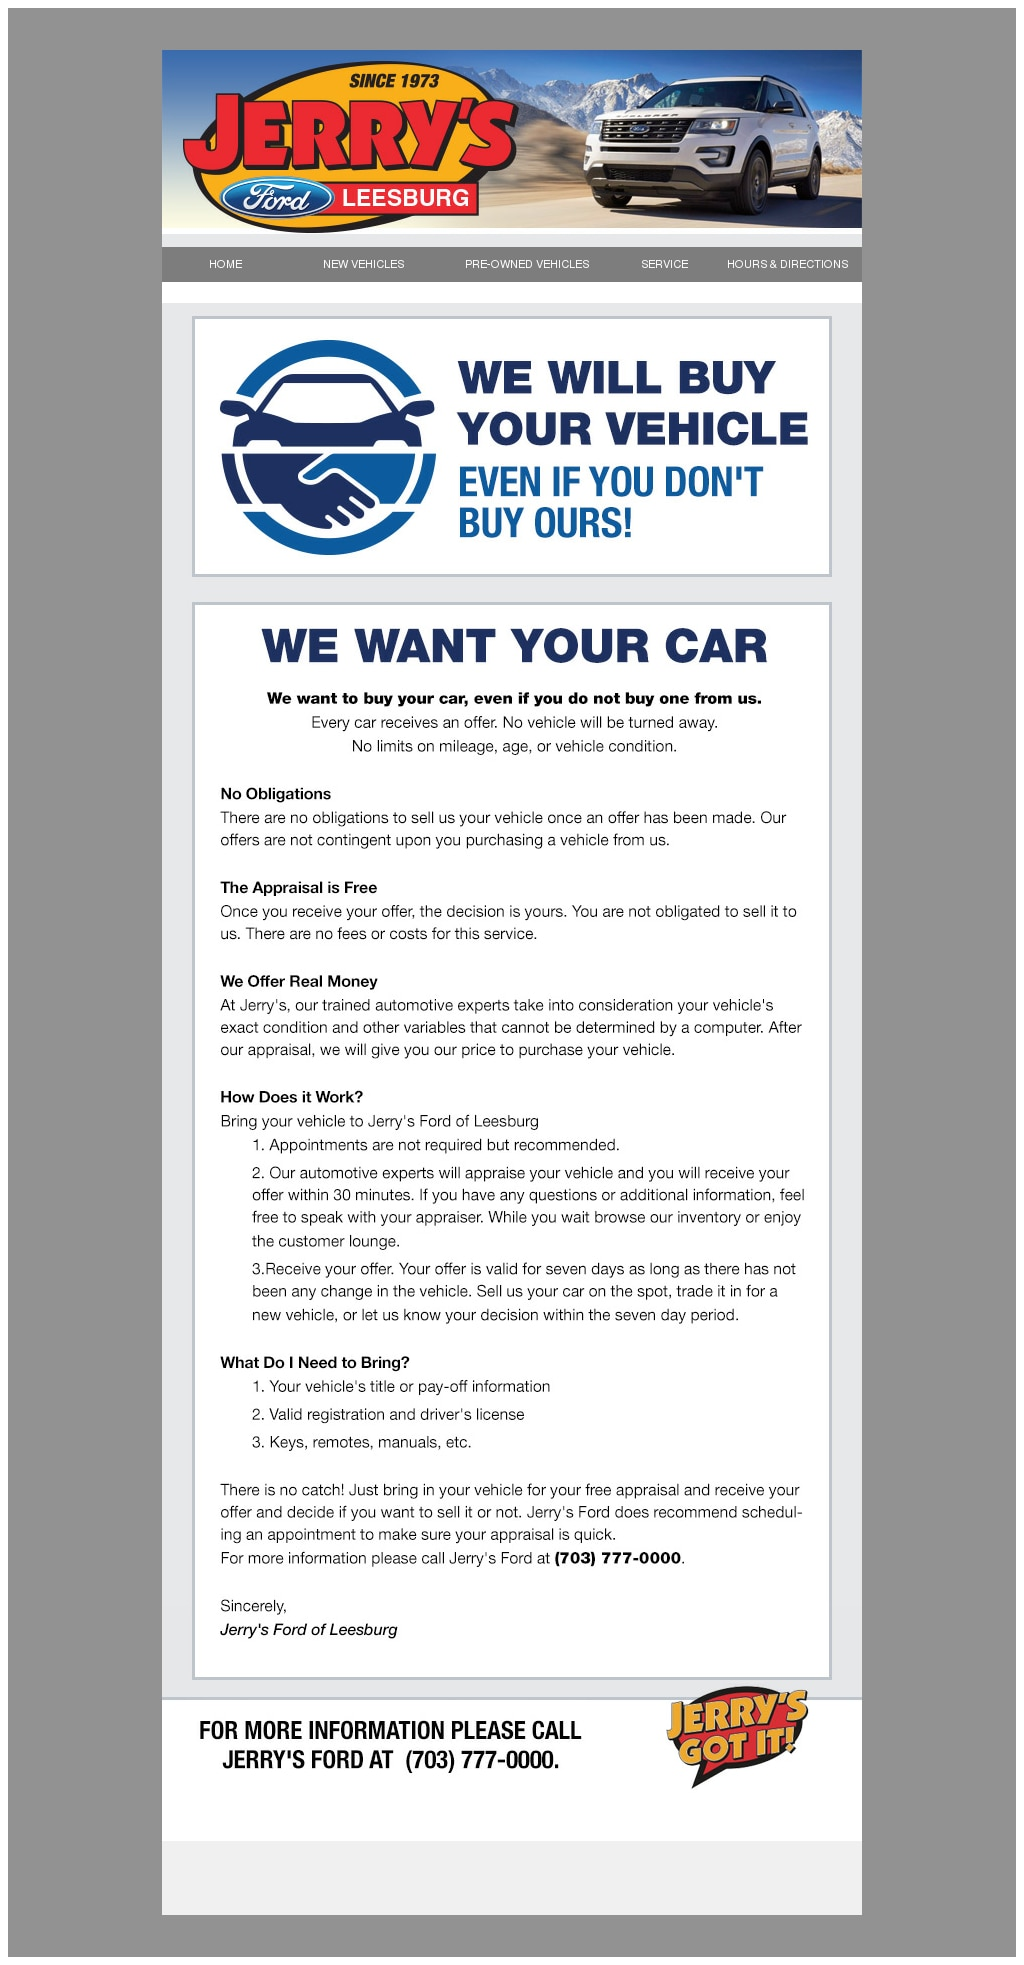 Jerry\'s Leesburg Ford | New Ford dealership in Leesburg, VA 20176